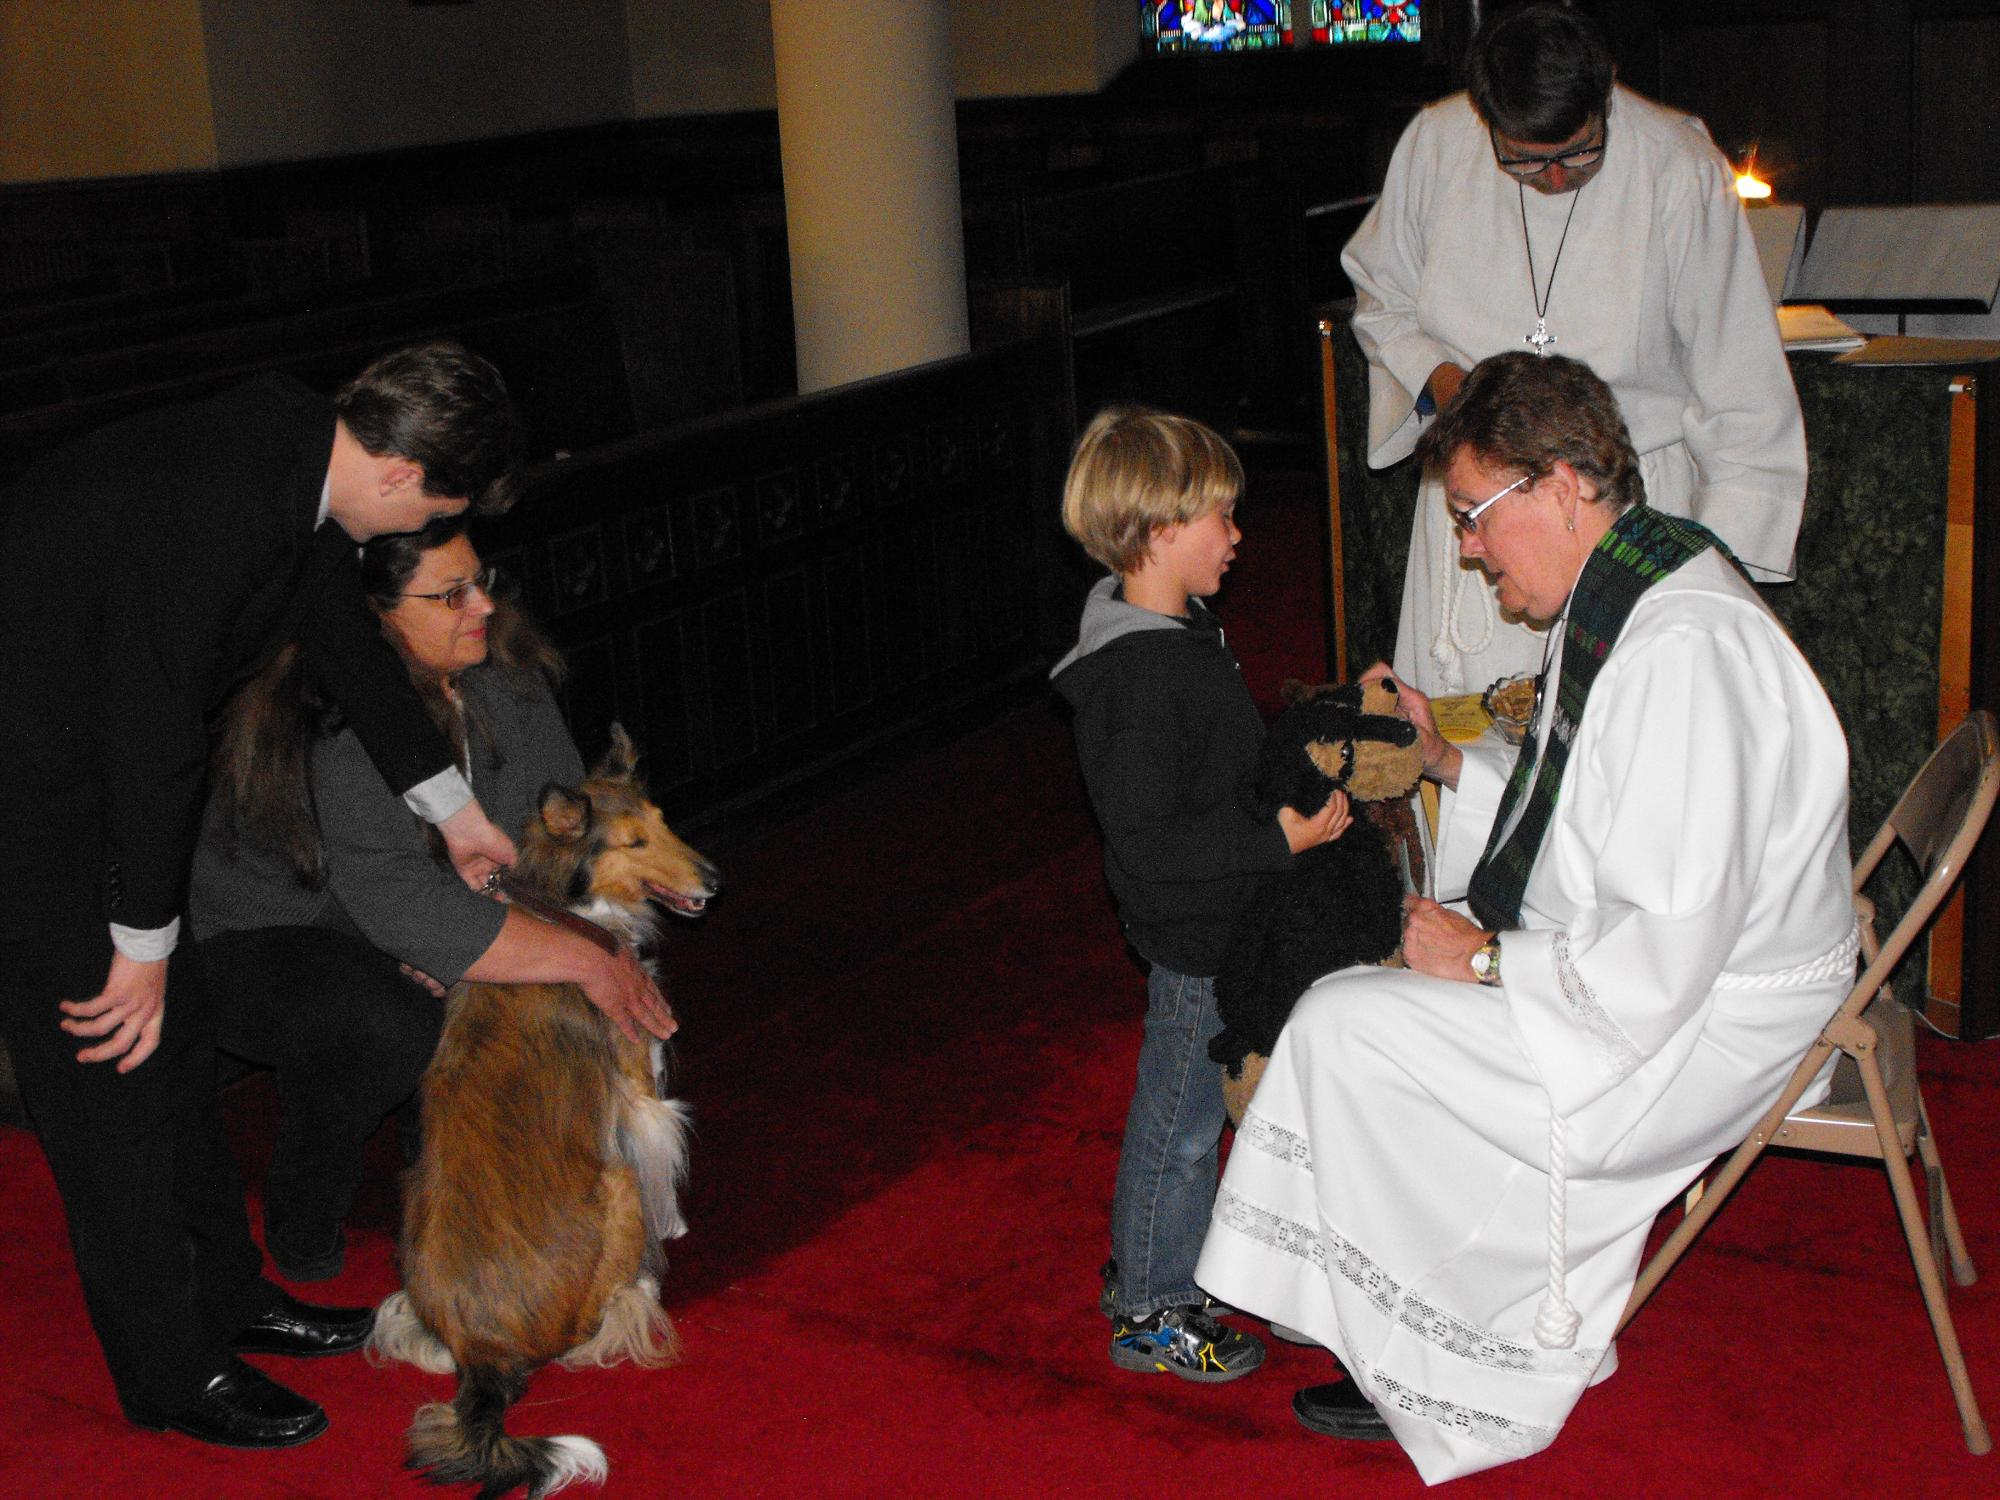 Blessing_of_the_Animals_10-4-15_068.JPG